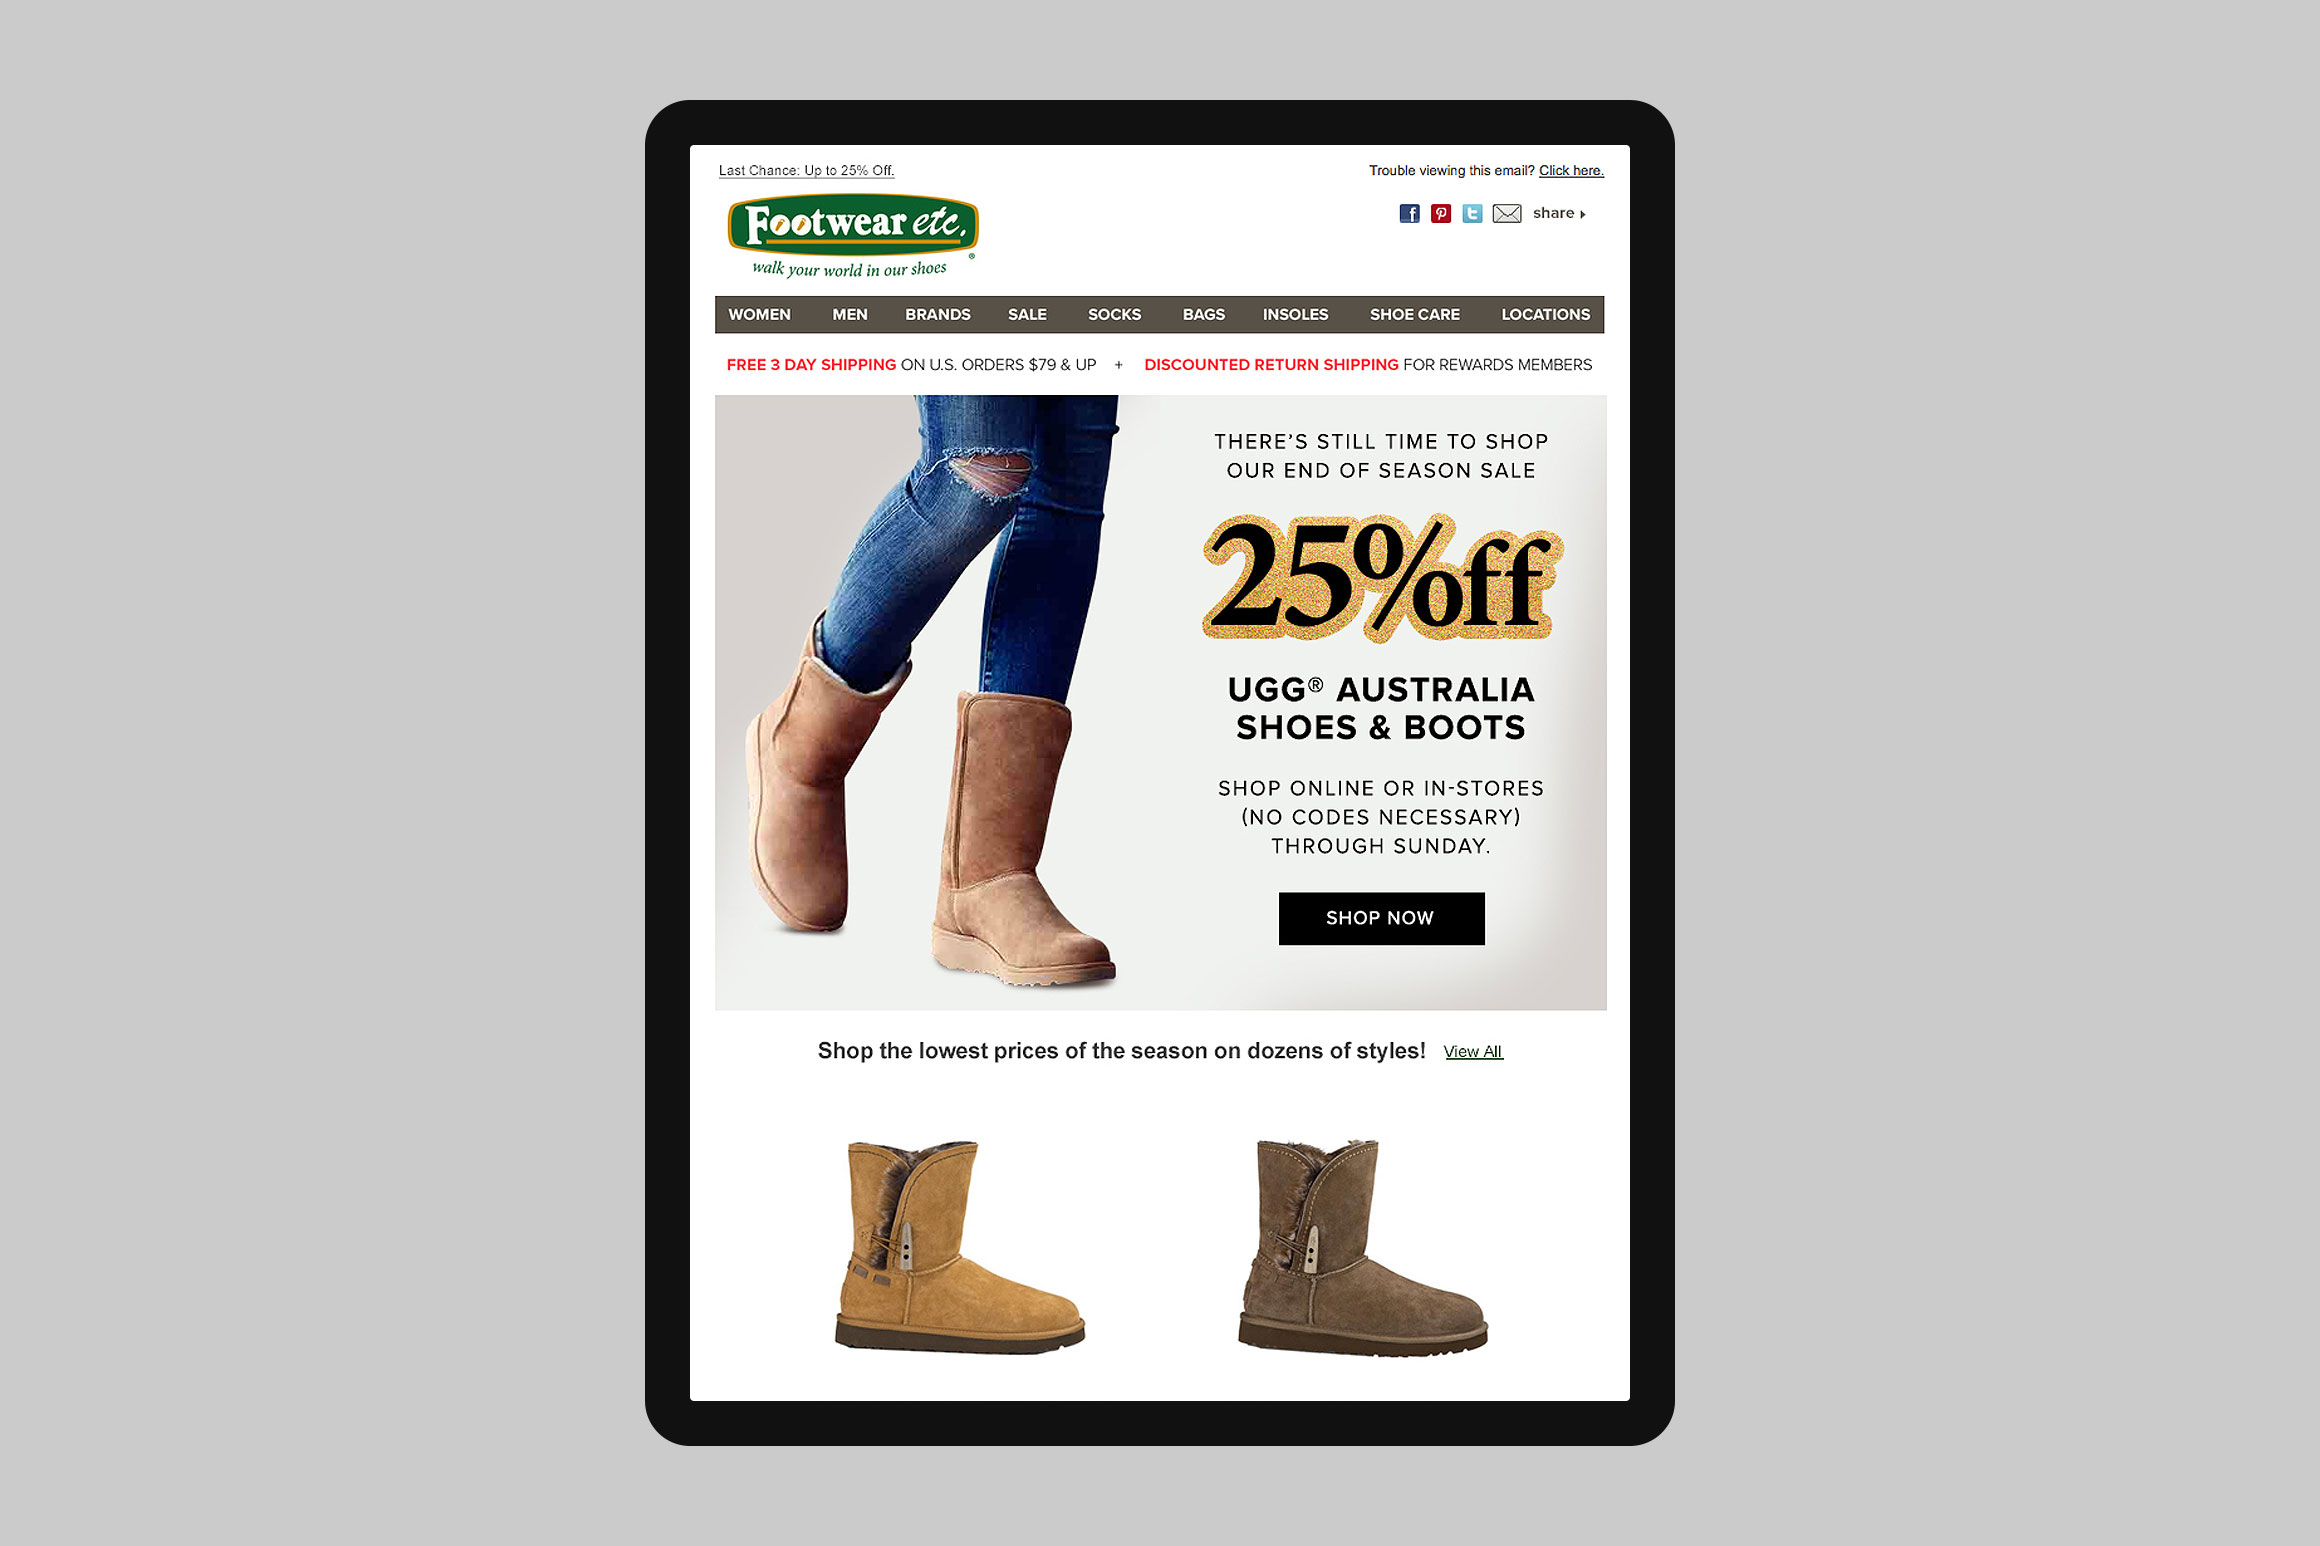 Footwear etc. Email Template #5